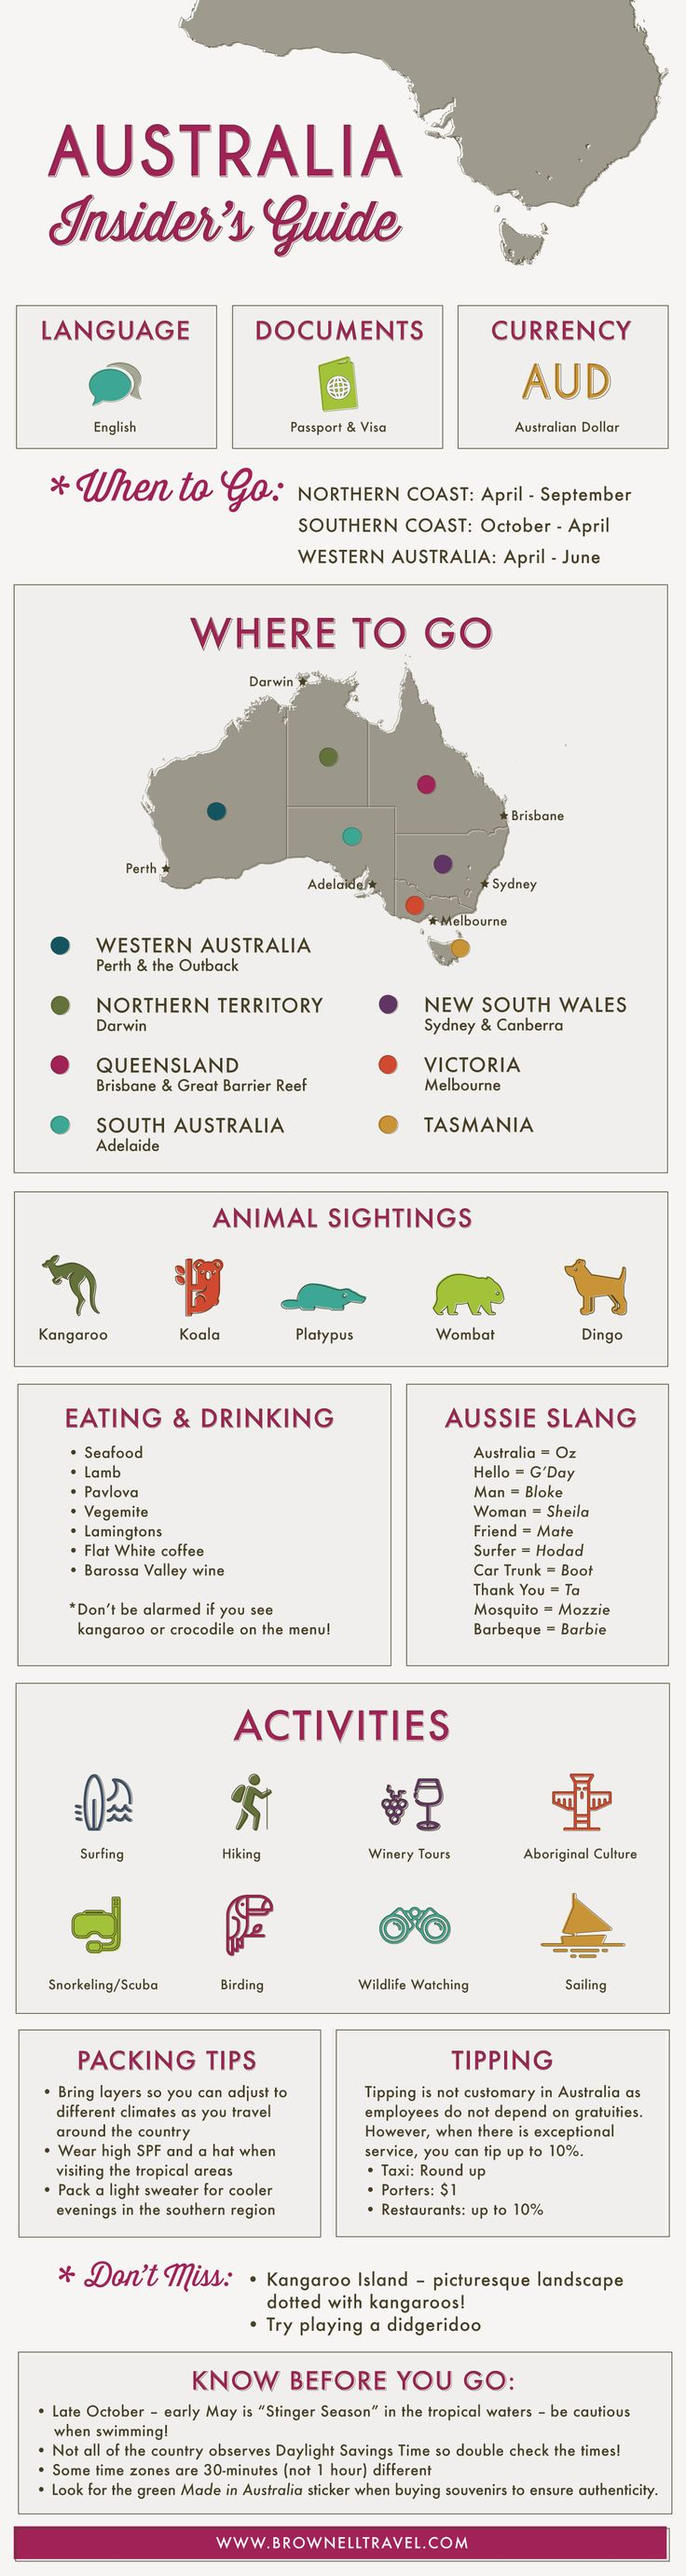 The insider's guide to Australia! http://www.brownelltravel.com/blog/insiders-guide-to-australia/